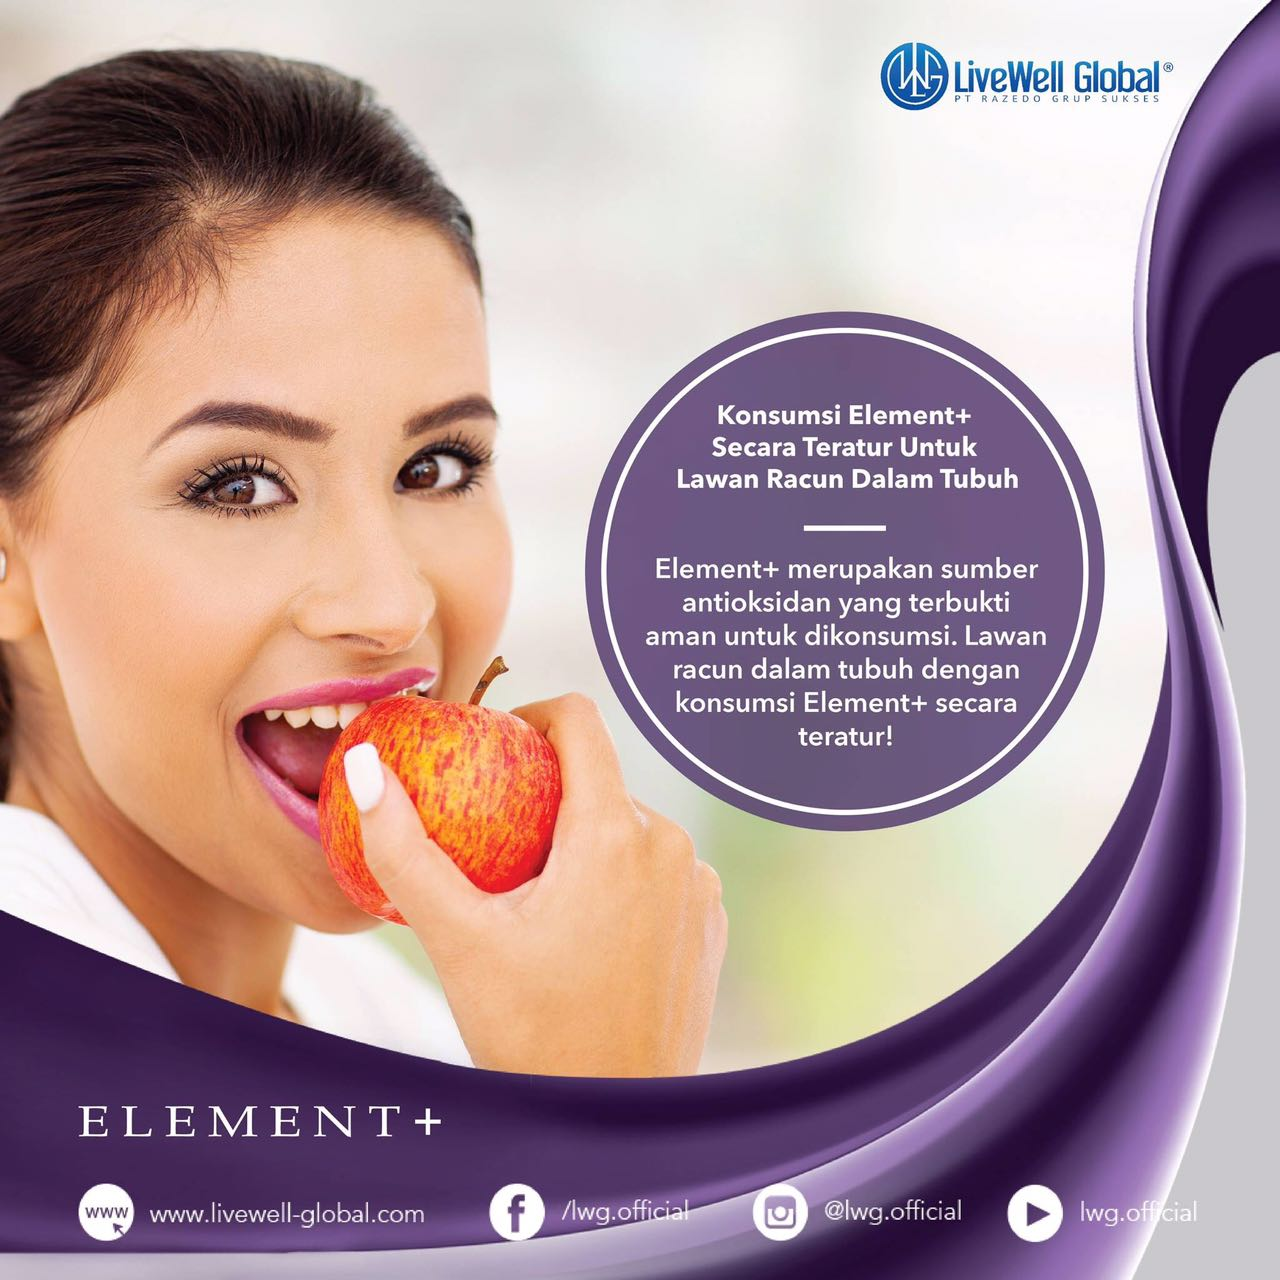 Peluang Bisnis Ideal Abad 21 2016 Gold 100rb Dapat 200rbgold Livewellglobal Mlmindonesia Networkmarketing Element Elementplus Antioksidan Antiaging Healthyproduct Buahberry Resveratrol Lwgblitar Anapatria